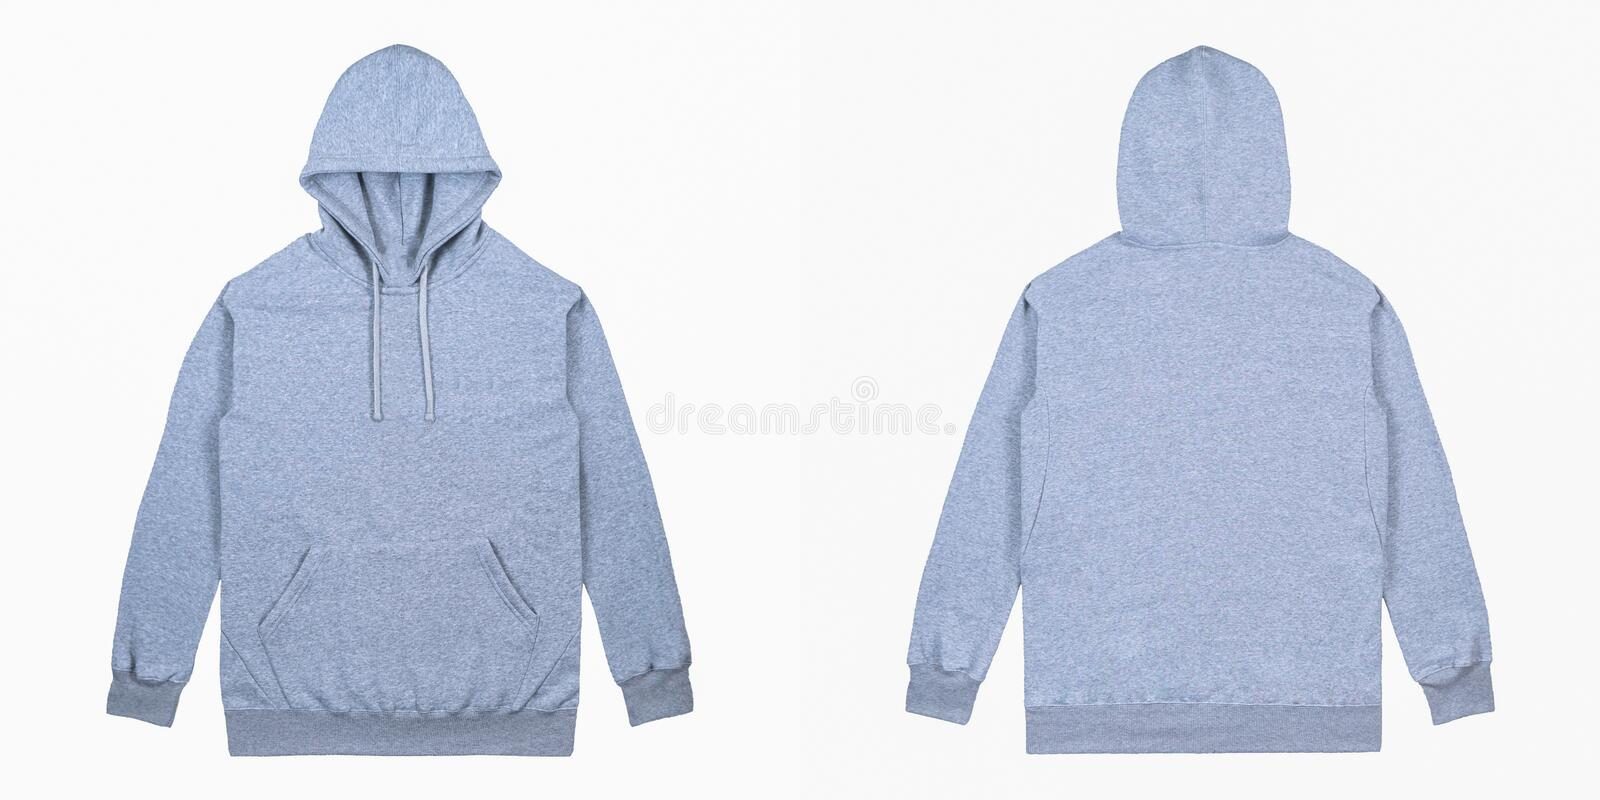 Blank plain Pullover hoodie front and back view with heather grey color, isolated on white background, ready for your mock up royalty free stock images